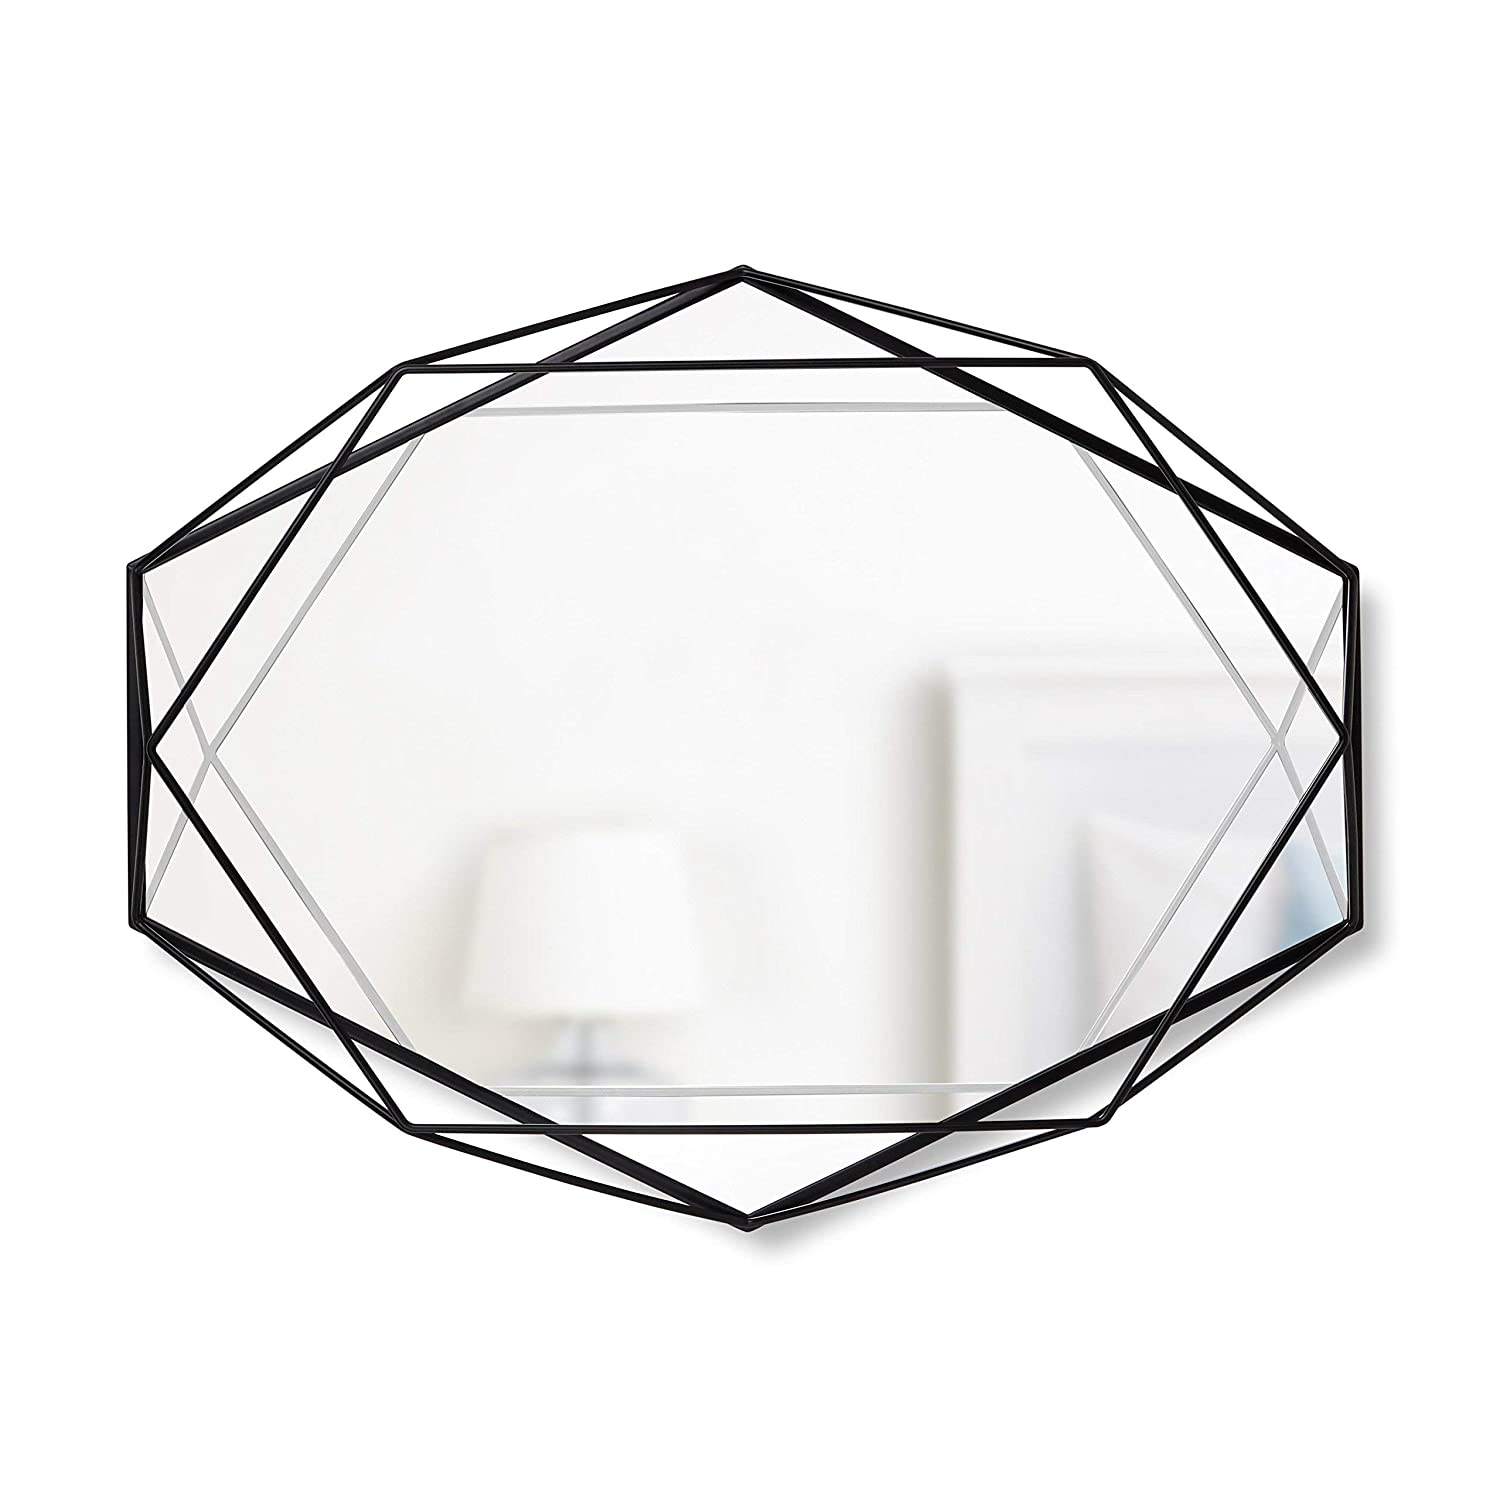 Black 358776-040 Umbra Modern Geometric Shaped Oval Prisma Wall Mirror